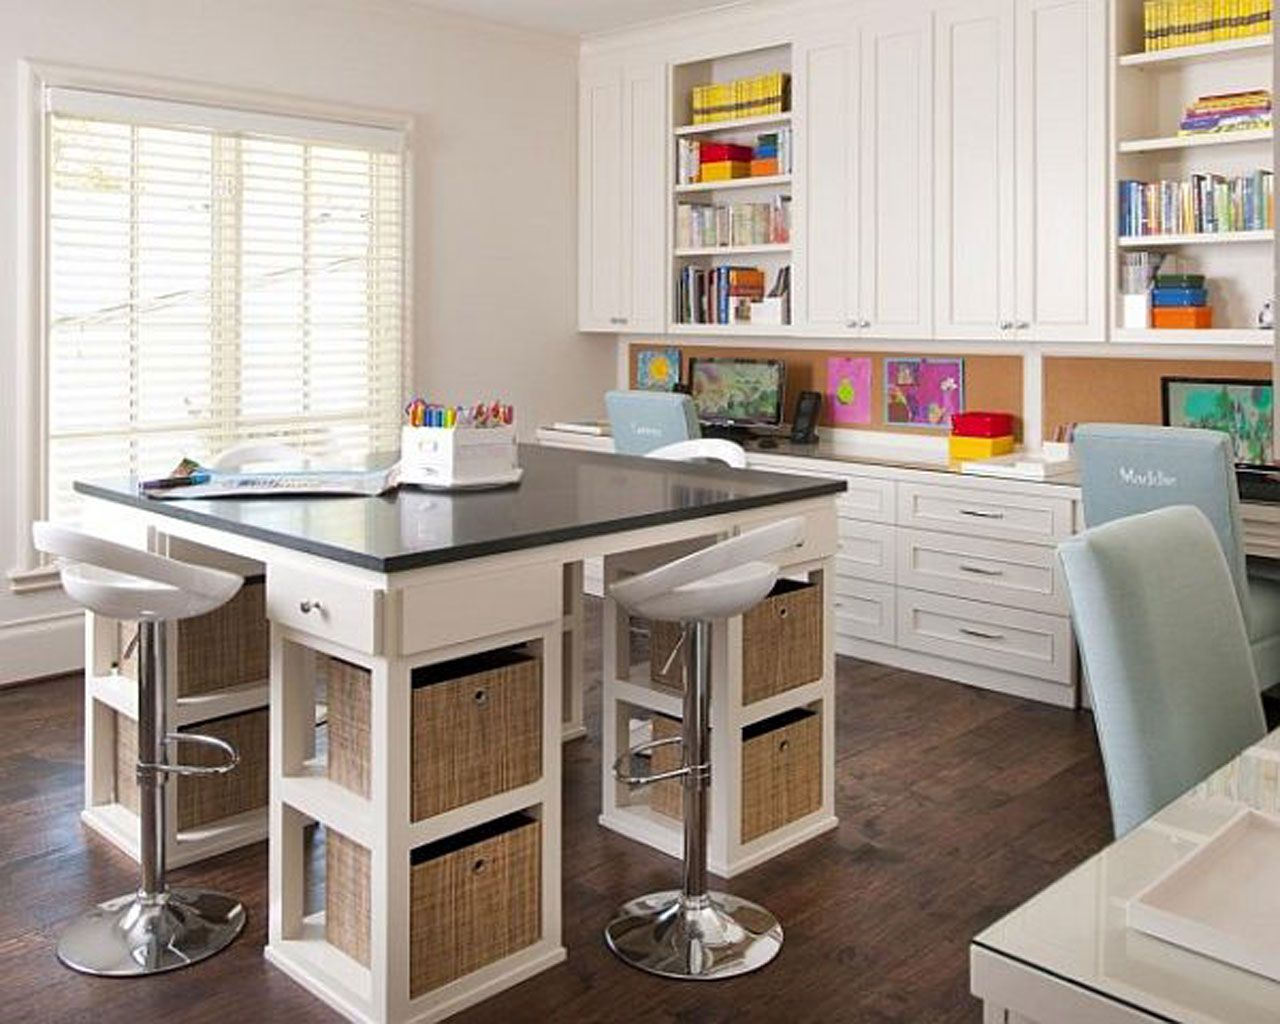 Craft room office ideas - 1000 Images About Craft Room Ideas On Pinterest Child Room And The Cabinet F